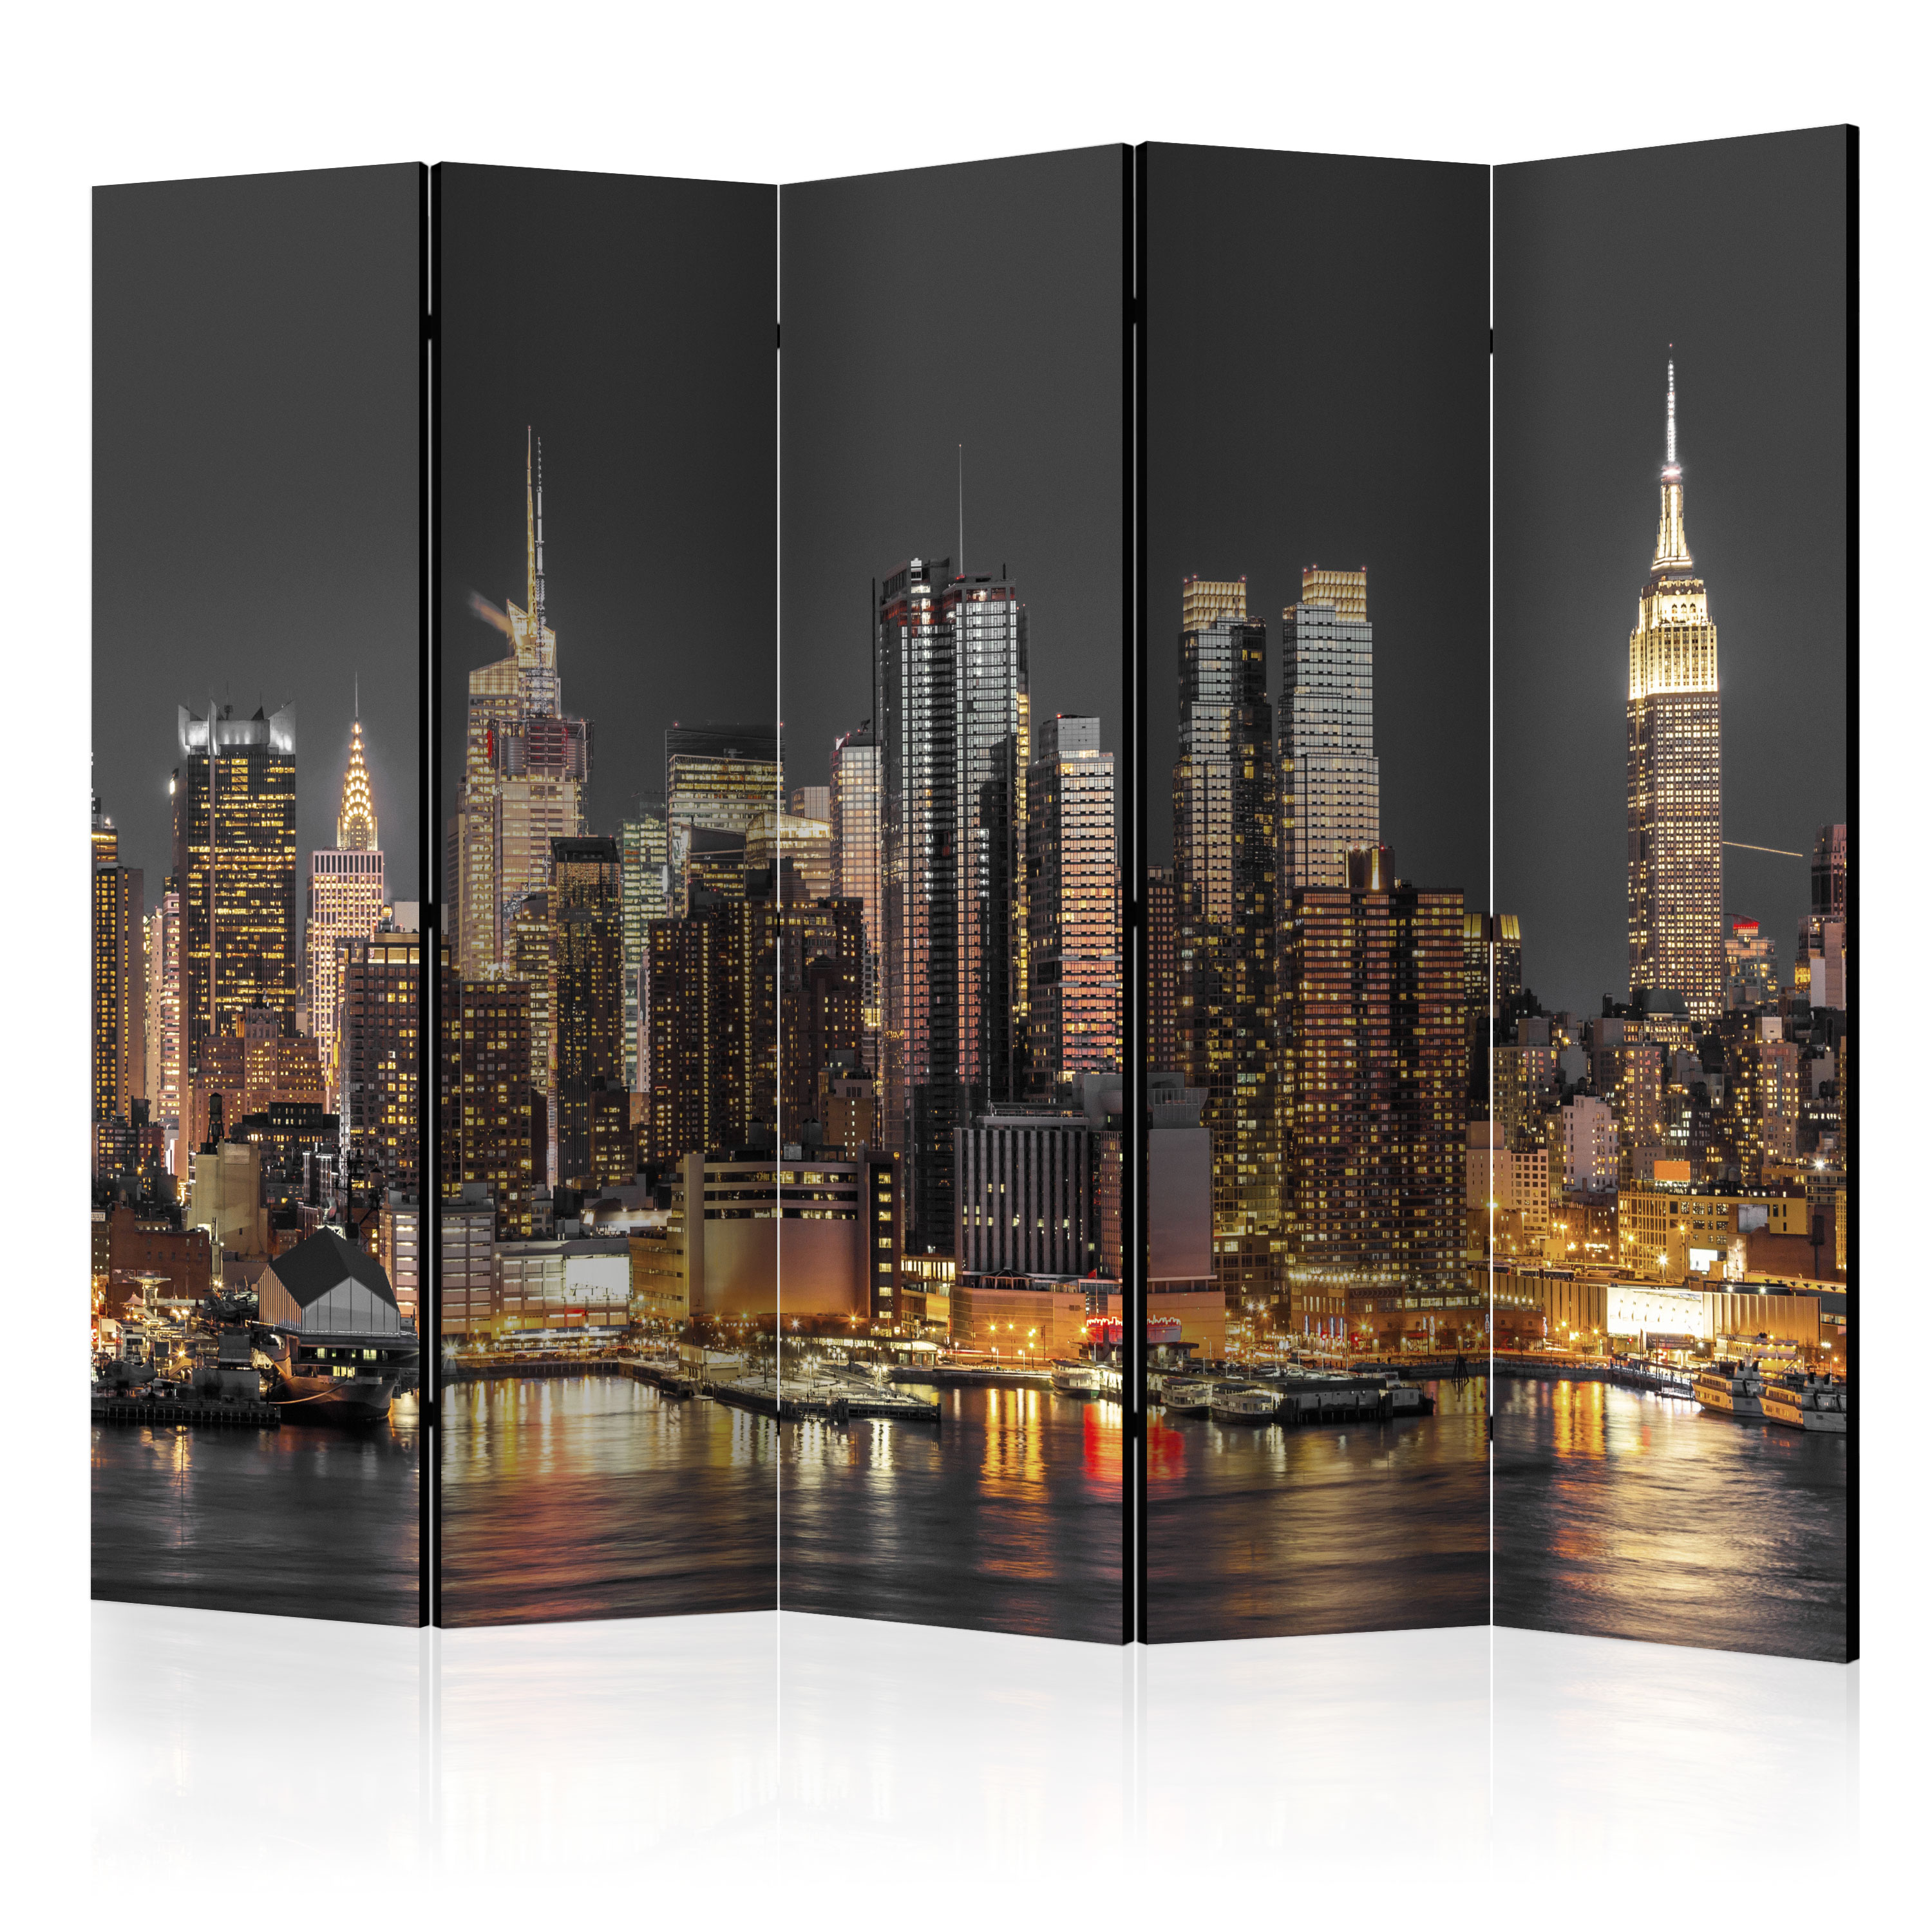 deko paravent raumteiler trennwand foto new york stadt 10 varianten 2 formate ebay. Black Bedroom Furniture Sets. Home Design Ideas